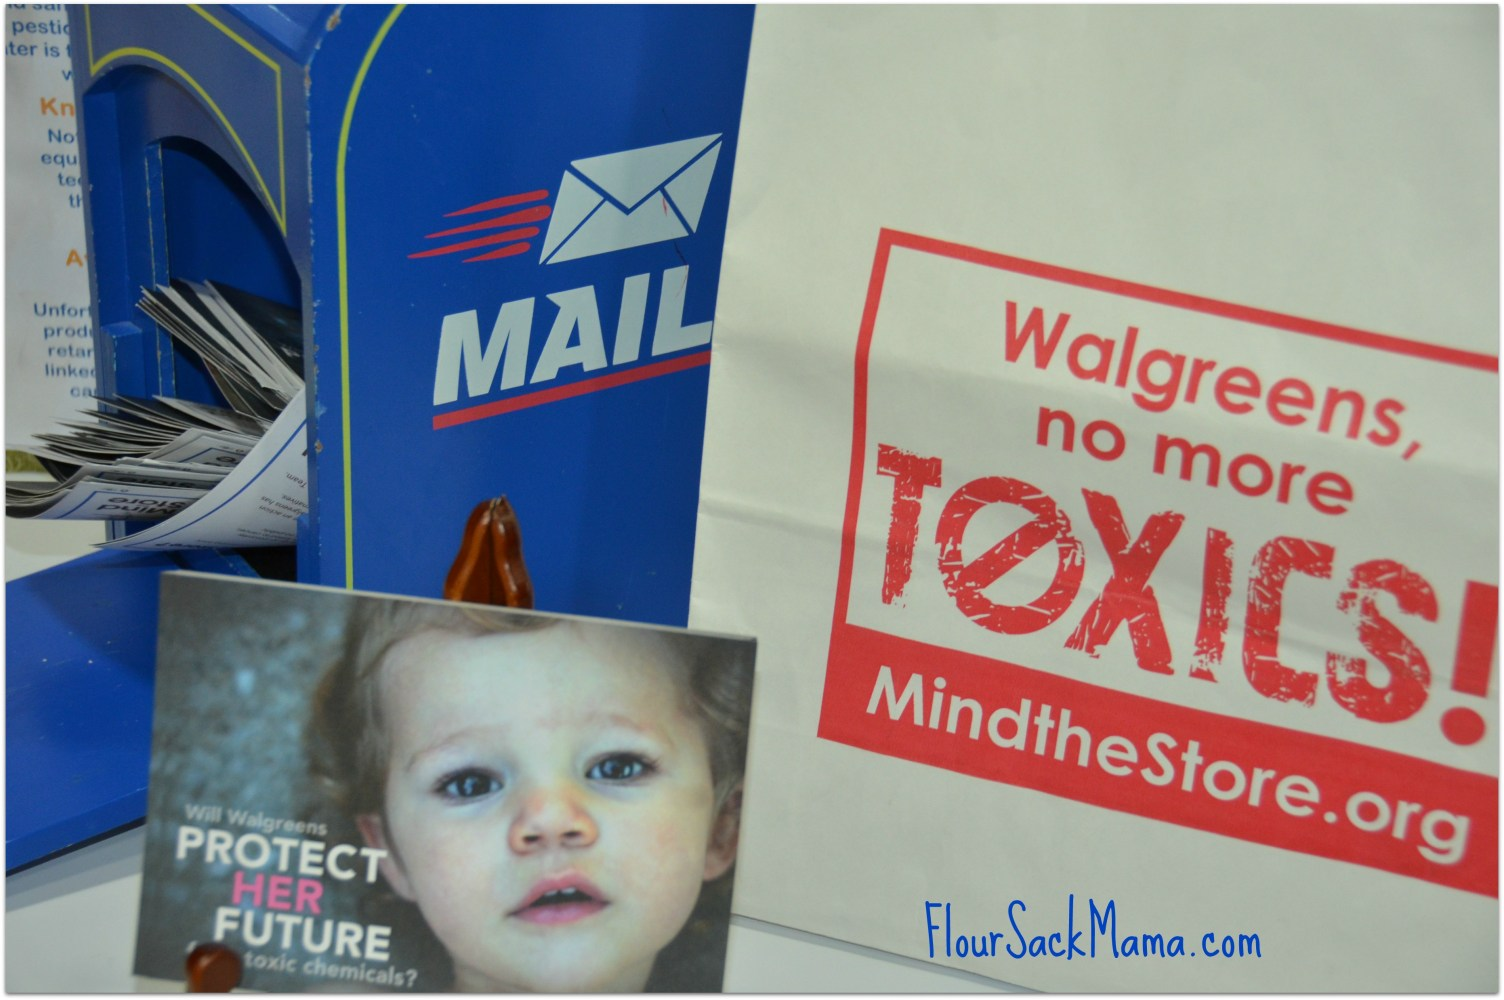 Mind the Store postcards to Walgreens